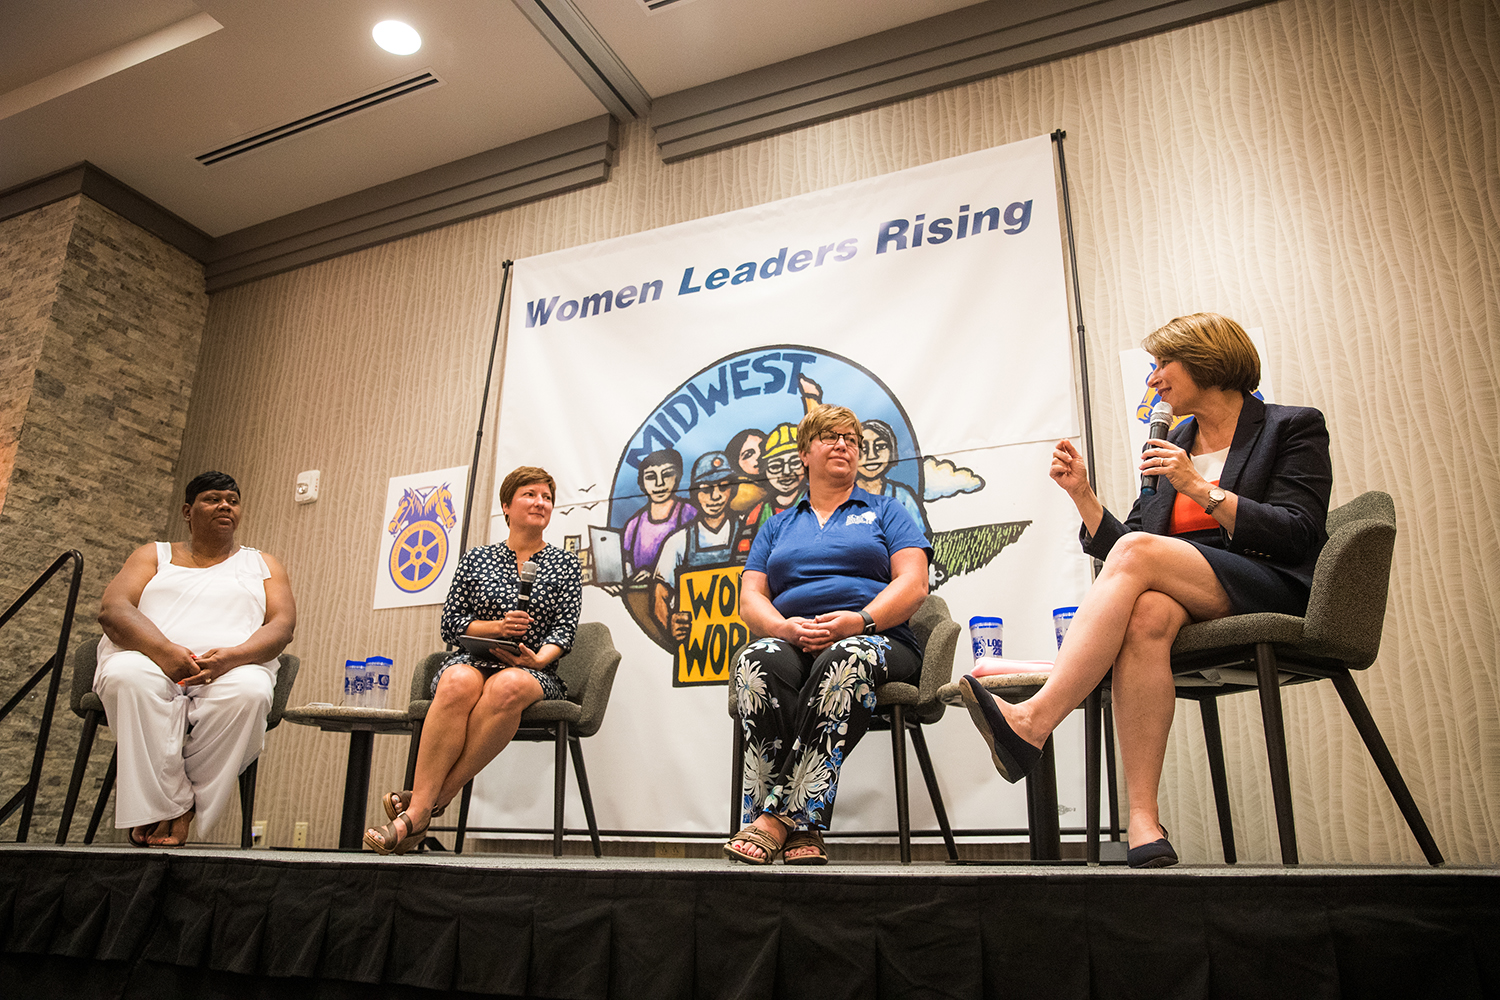 Sen. Amy Klobuchar, D-M.N., addresses members during the 2019 Midwest School for Woman Workers at The Hilton Garden Inn in Iowa City on Thursday July 25, 2019.